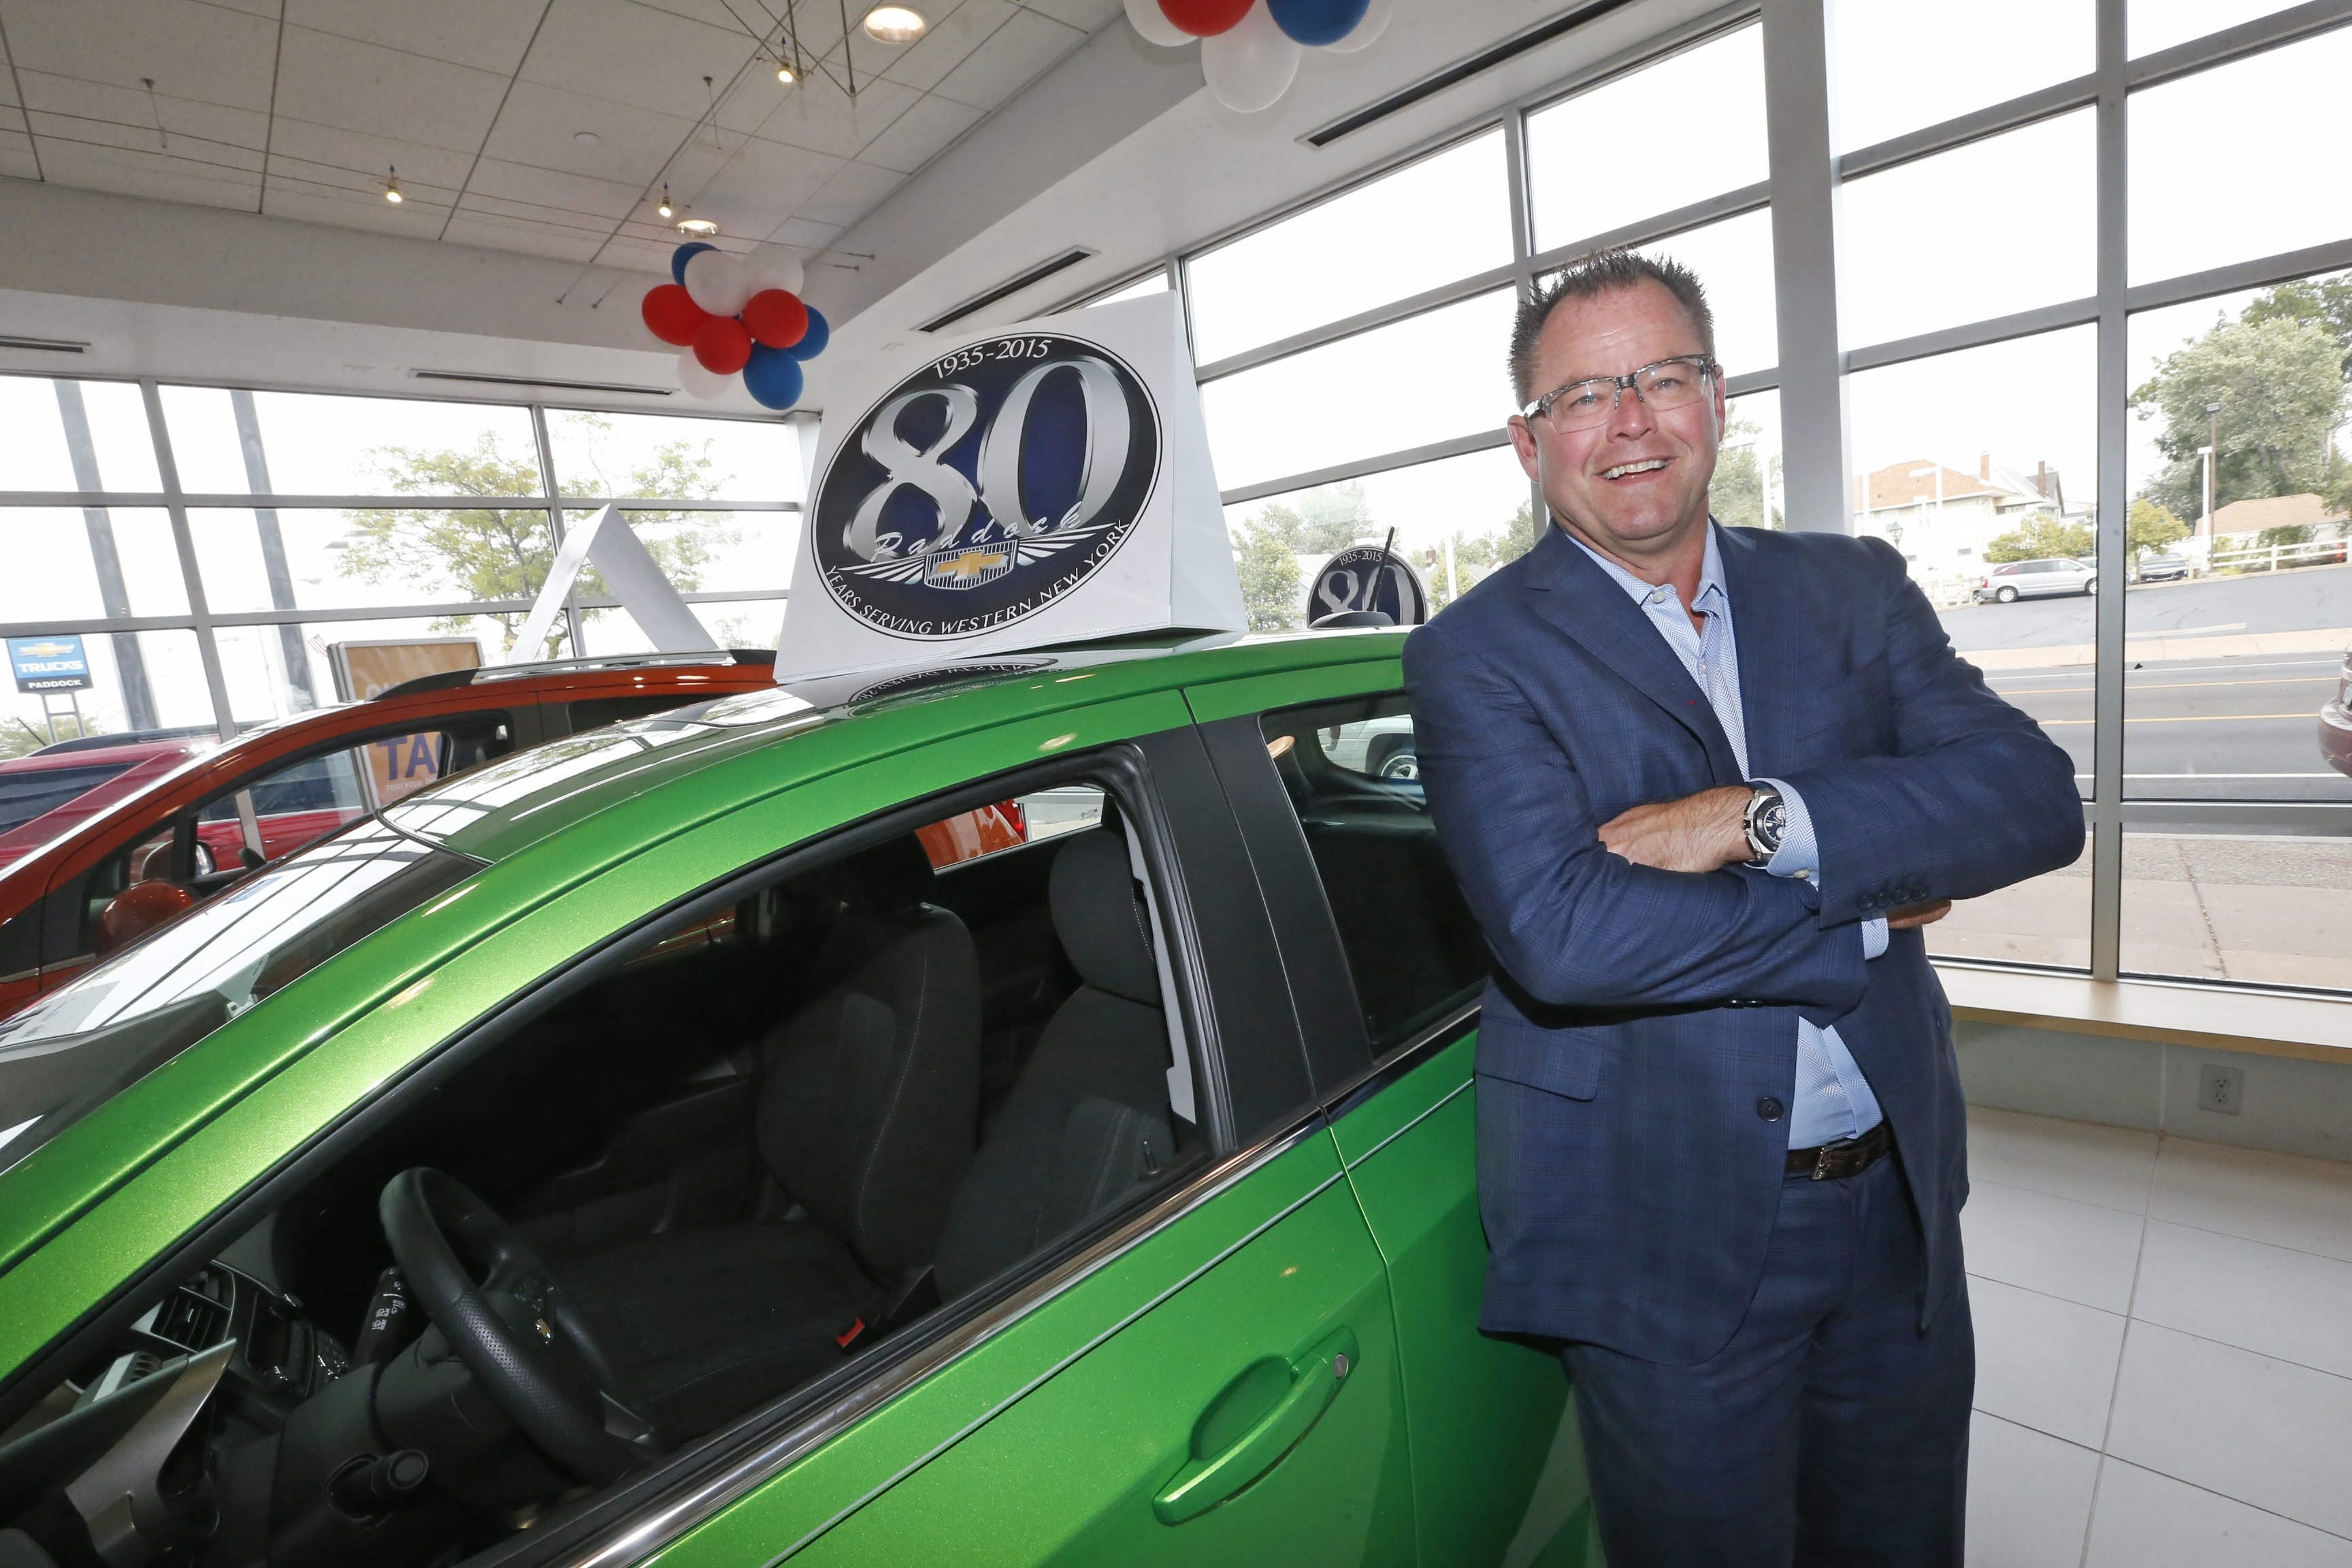 Duane Paddock, owner of Paddock Chevrolet, took lessons from his childhood with dyslexia to inspire and improve his approach to business.